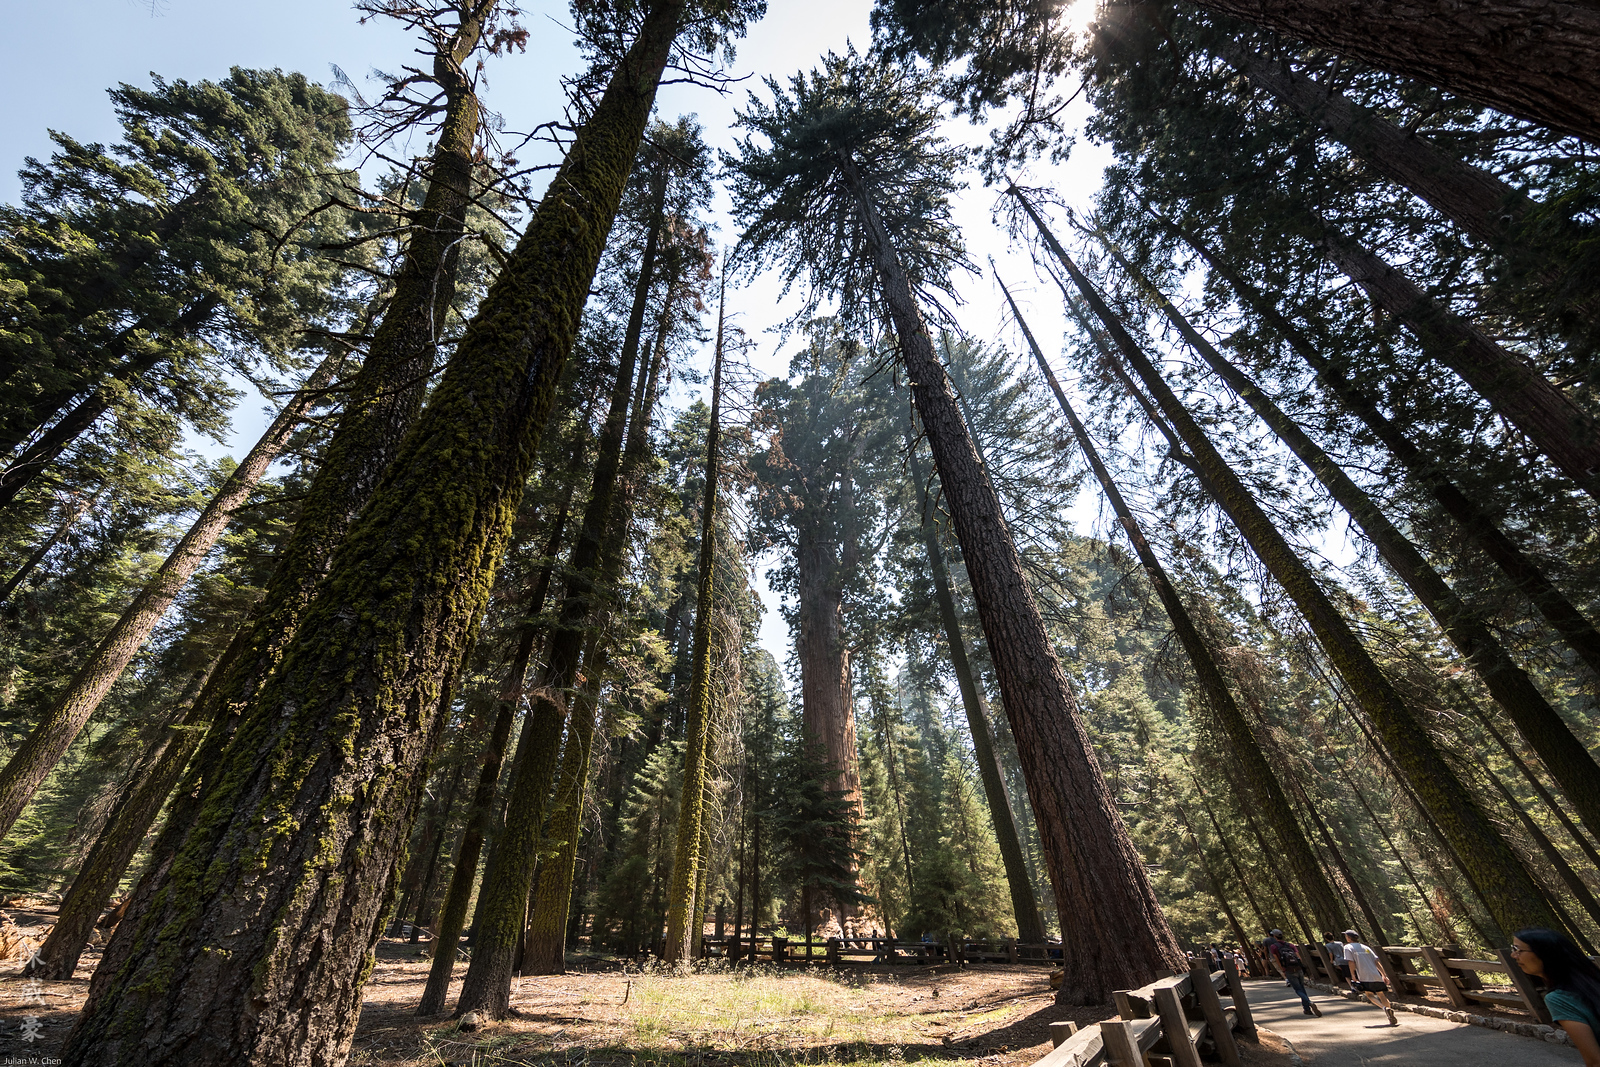 IMAGE: https://photos.smugmug.com/Photography/Sequoia-National-Park/i-pJQtqLk/0/3f0b08c0/X3/20180728-Canon%20EOS-1D%20X%20Mark%20II-1DX29633-X3.jpg